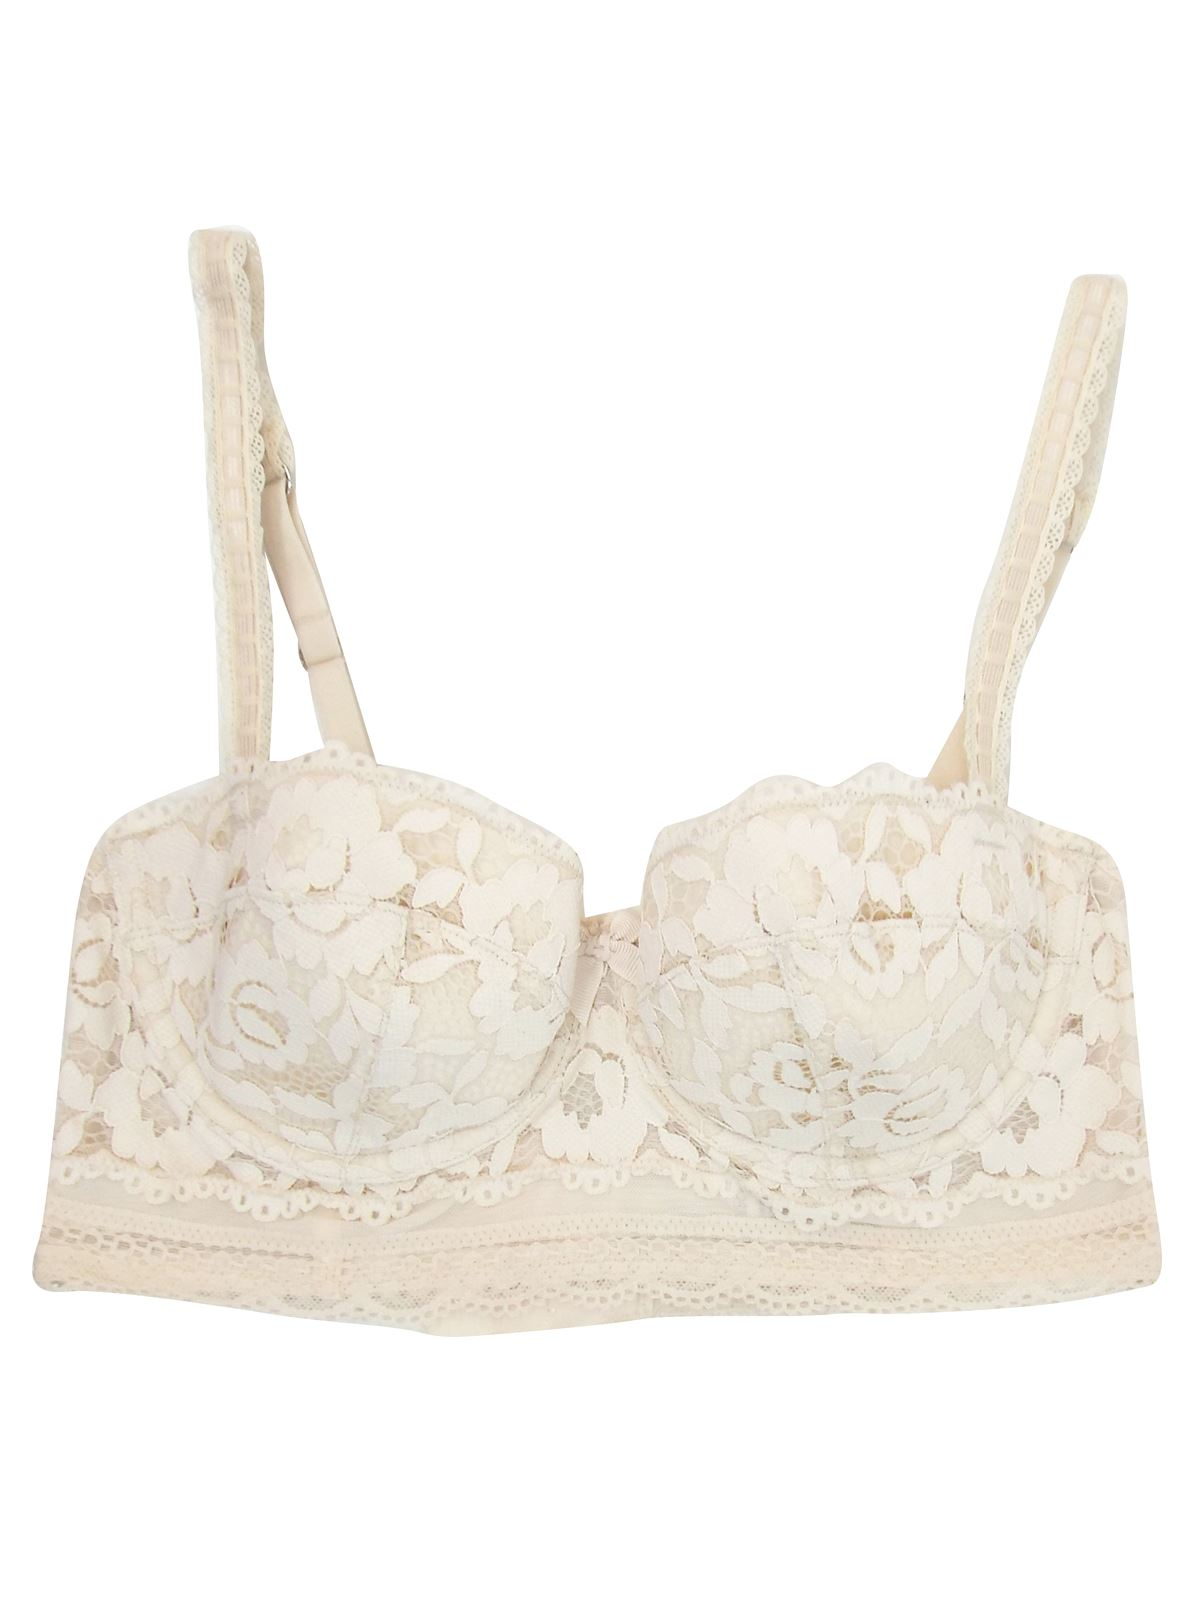 Ex-M-amp-S-Marks-And-Spencer-Lightly-Padded-Lace-Longline-Balcony-Bra thumbnail 8